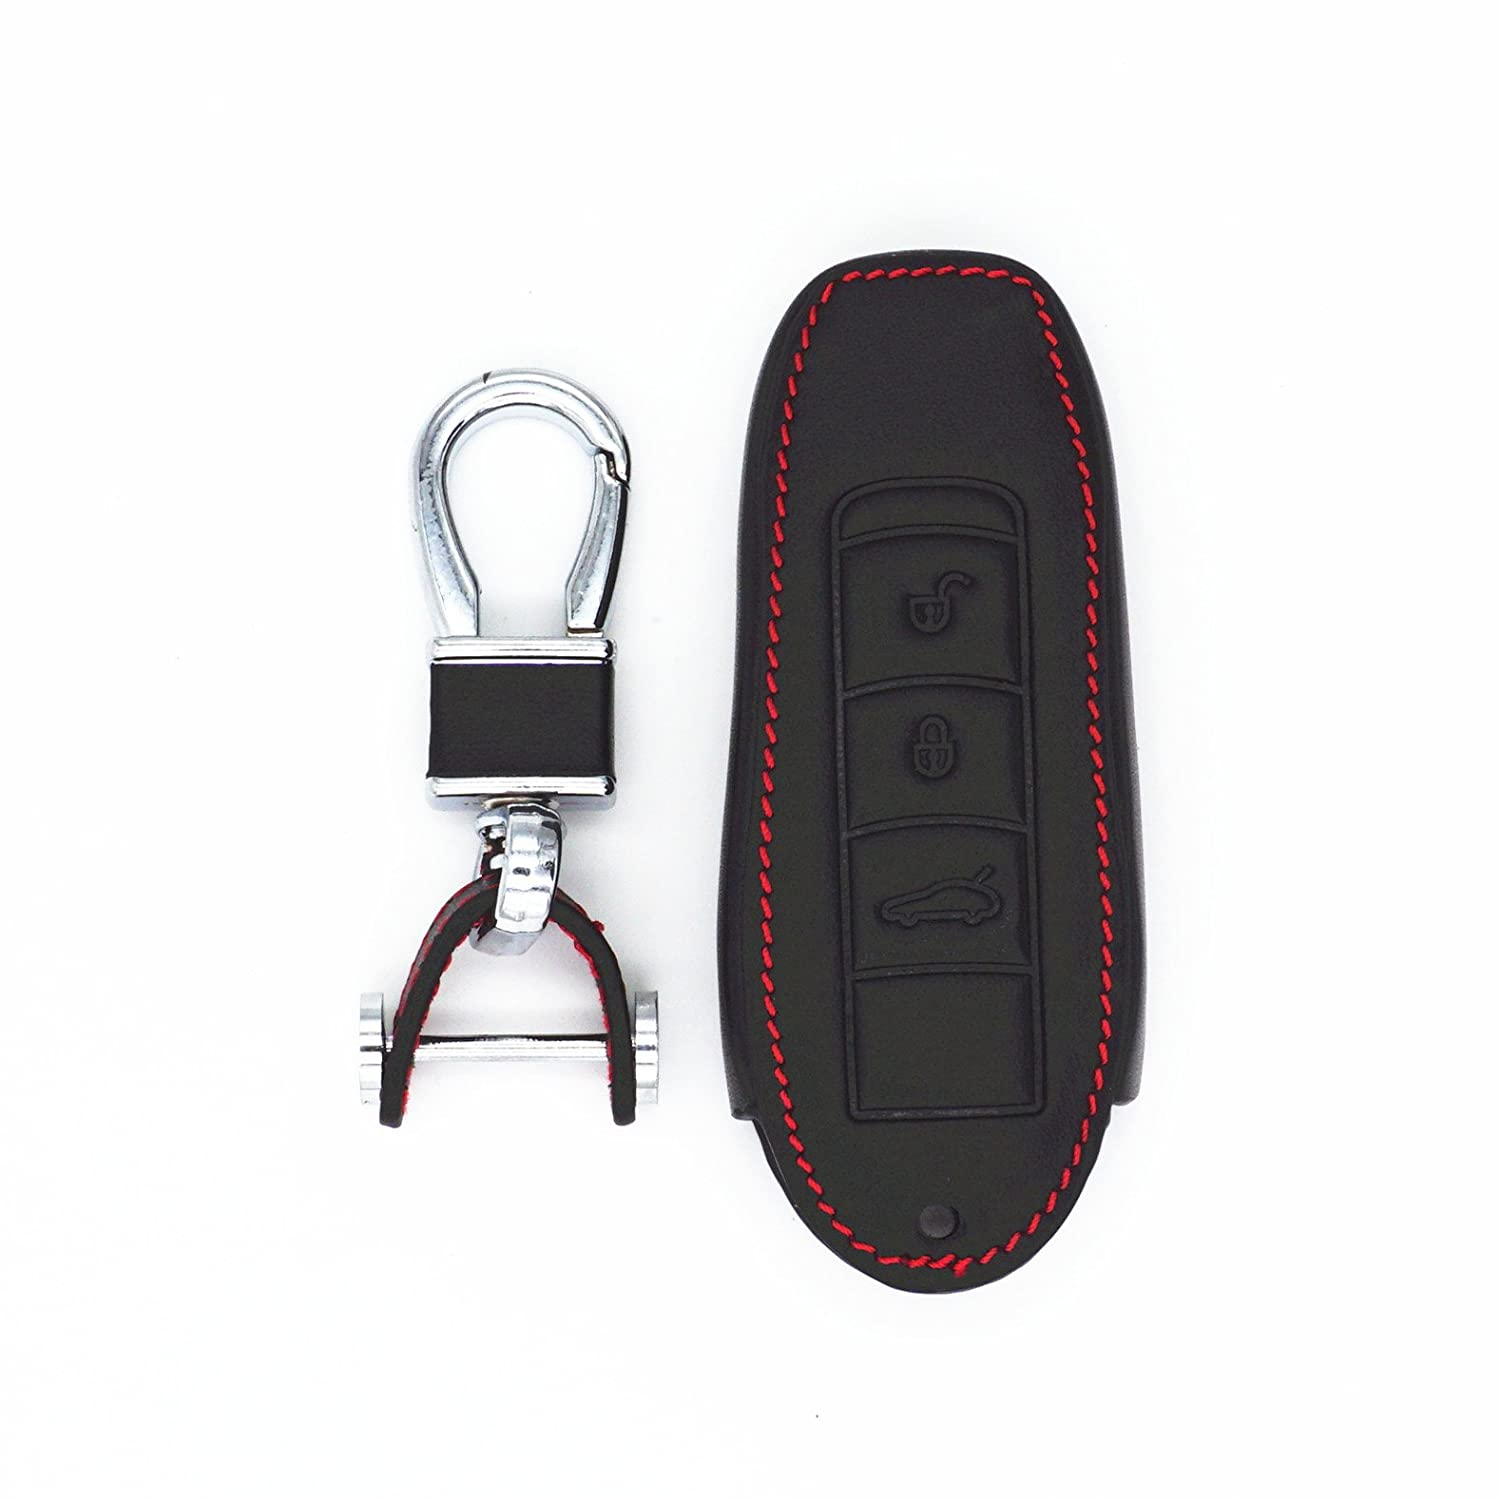 WFMJ New Black Genuine Leather Smart Remote Assesories 3 Buttons Key Chain Holder Cover Case Fob for Porsche Cayenne 92A Panamera 970 Boxster 981 Cayman 981 Carrera 911 991 918 Spyder Macan 95B WFMJ Auto